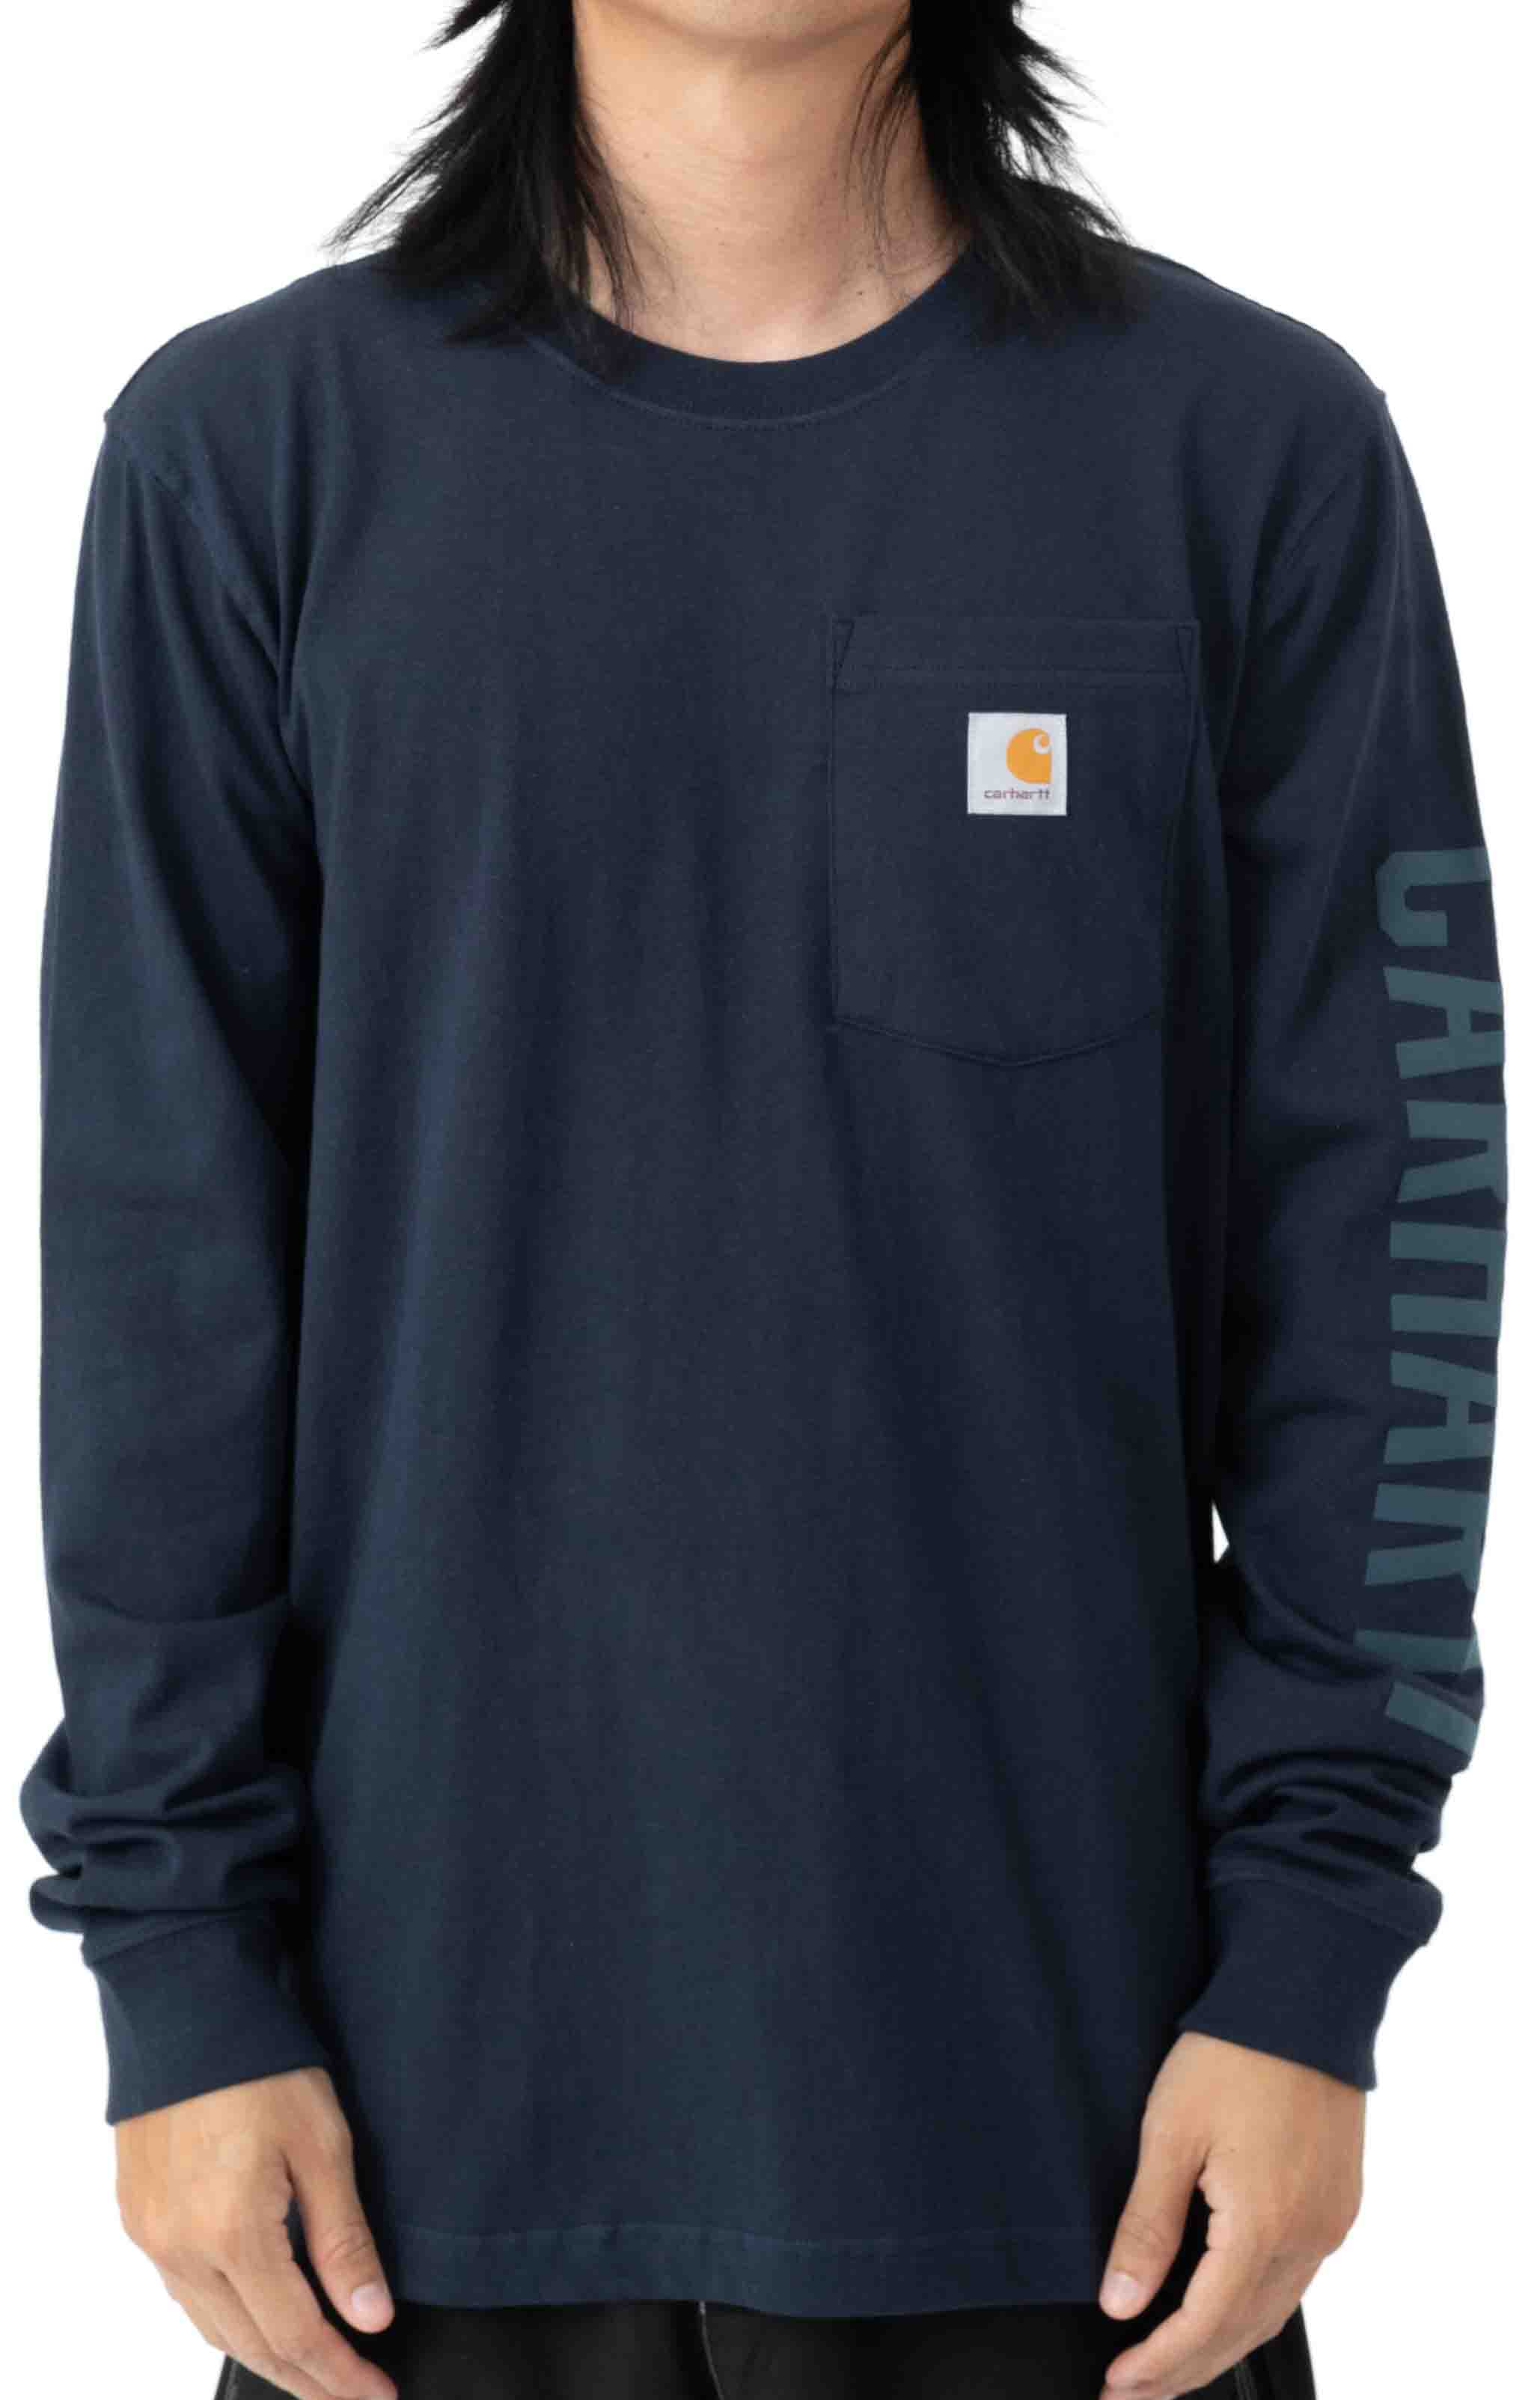 (105041) Relaxed Fit Heavyweight L/S Pocket Logo Graphic T-Shirt - Navy